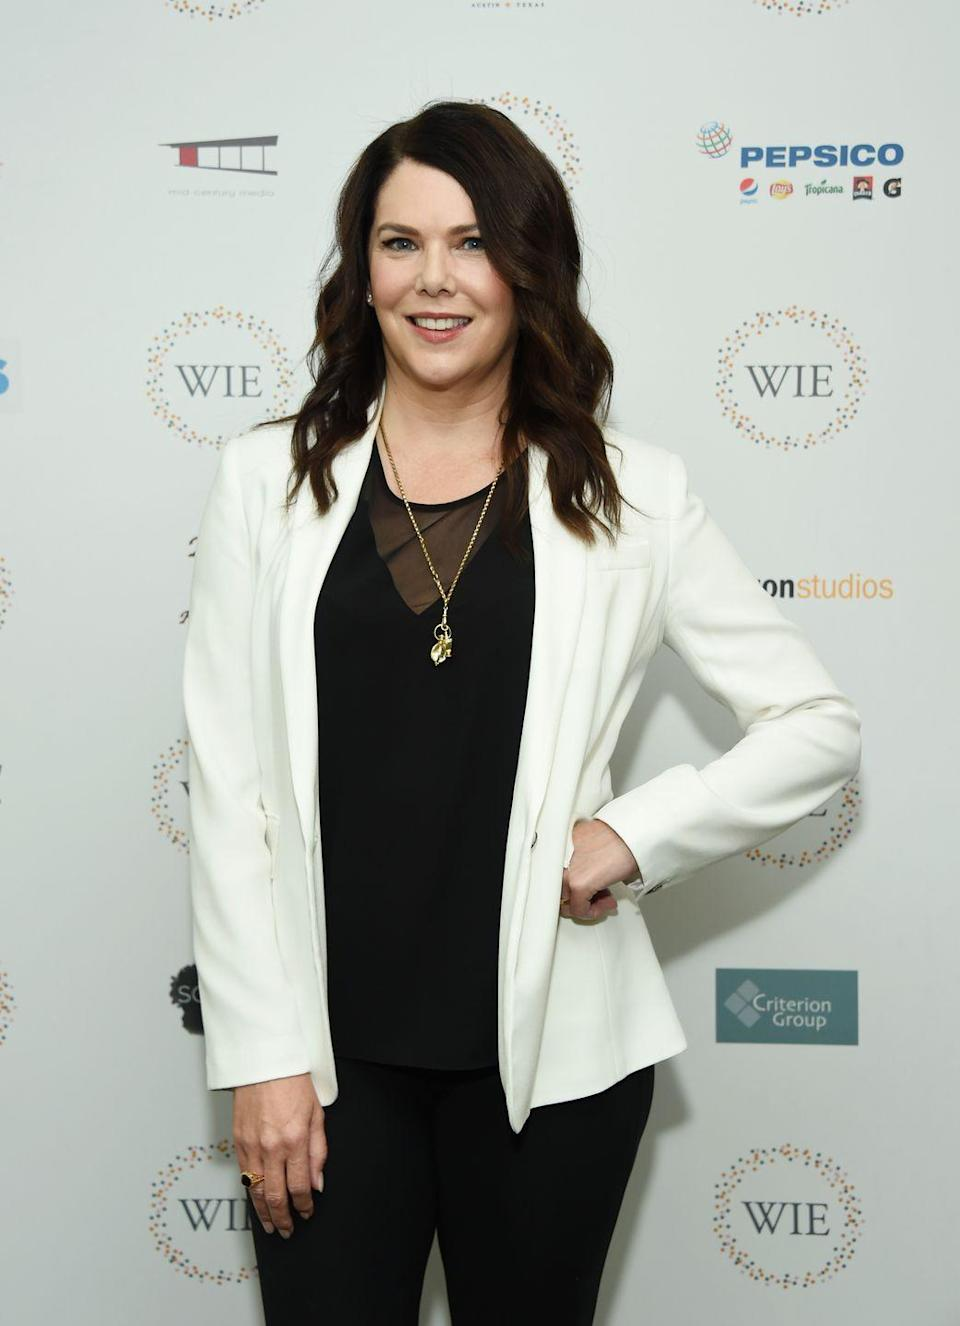 <p>Lauren enjoyed a few roles in films like <em>Evan Almighty </em>and <em>Because I Said So</em> after saying farewell to Stars Hollow. She made her triumphant return to TV in 2010 as Sarah Braverman on NBC's <em>Parenthood</em>. The show ran for six seasons, and she met her partner, Peter Kraus, on set. He played her TV brother!</p>